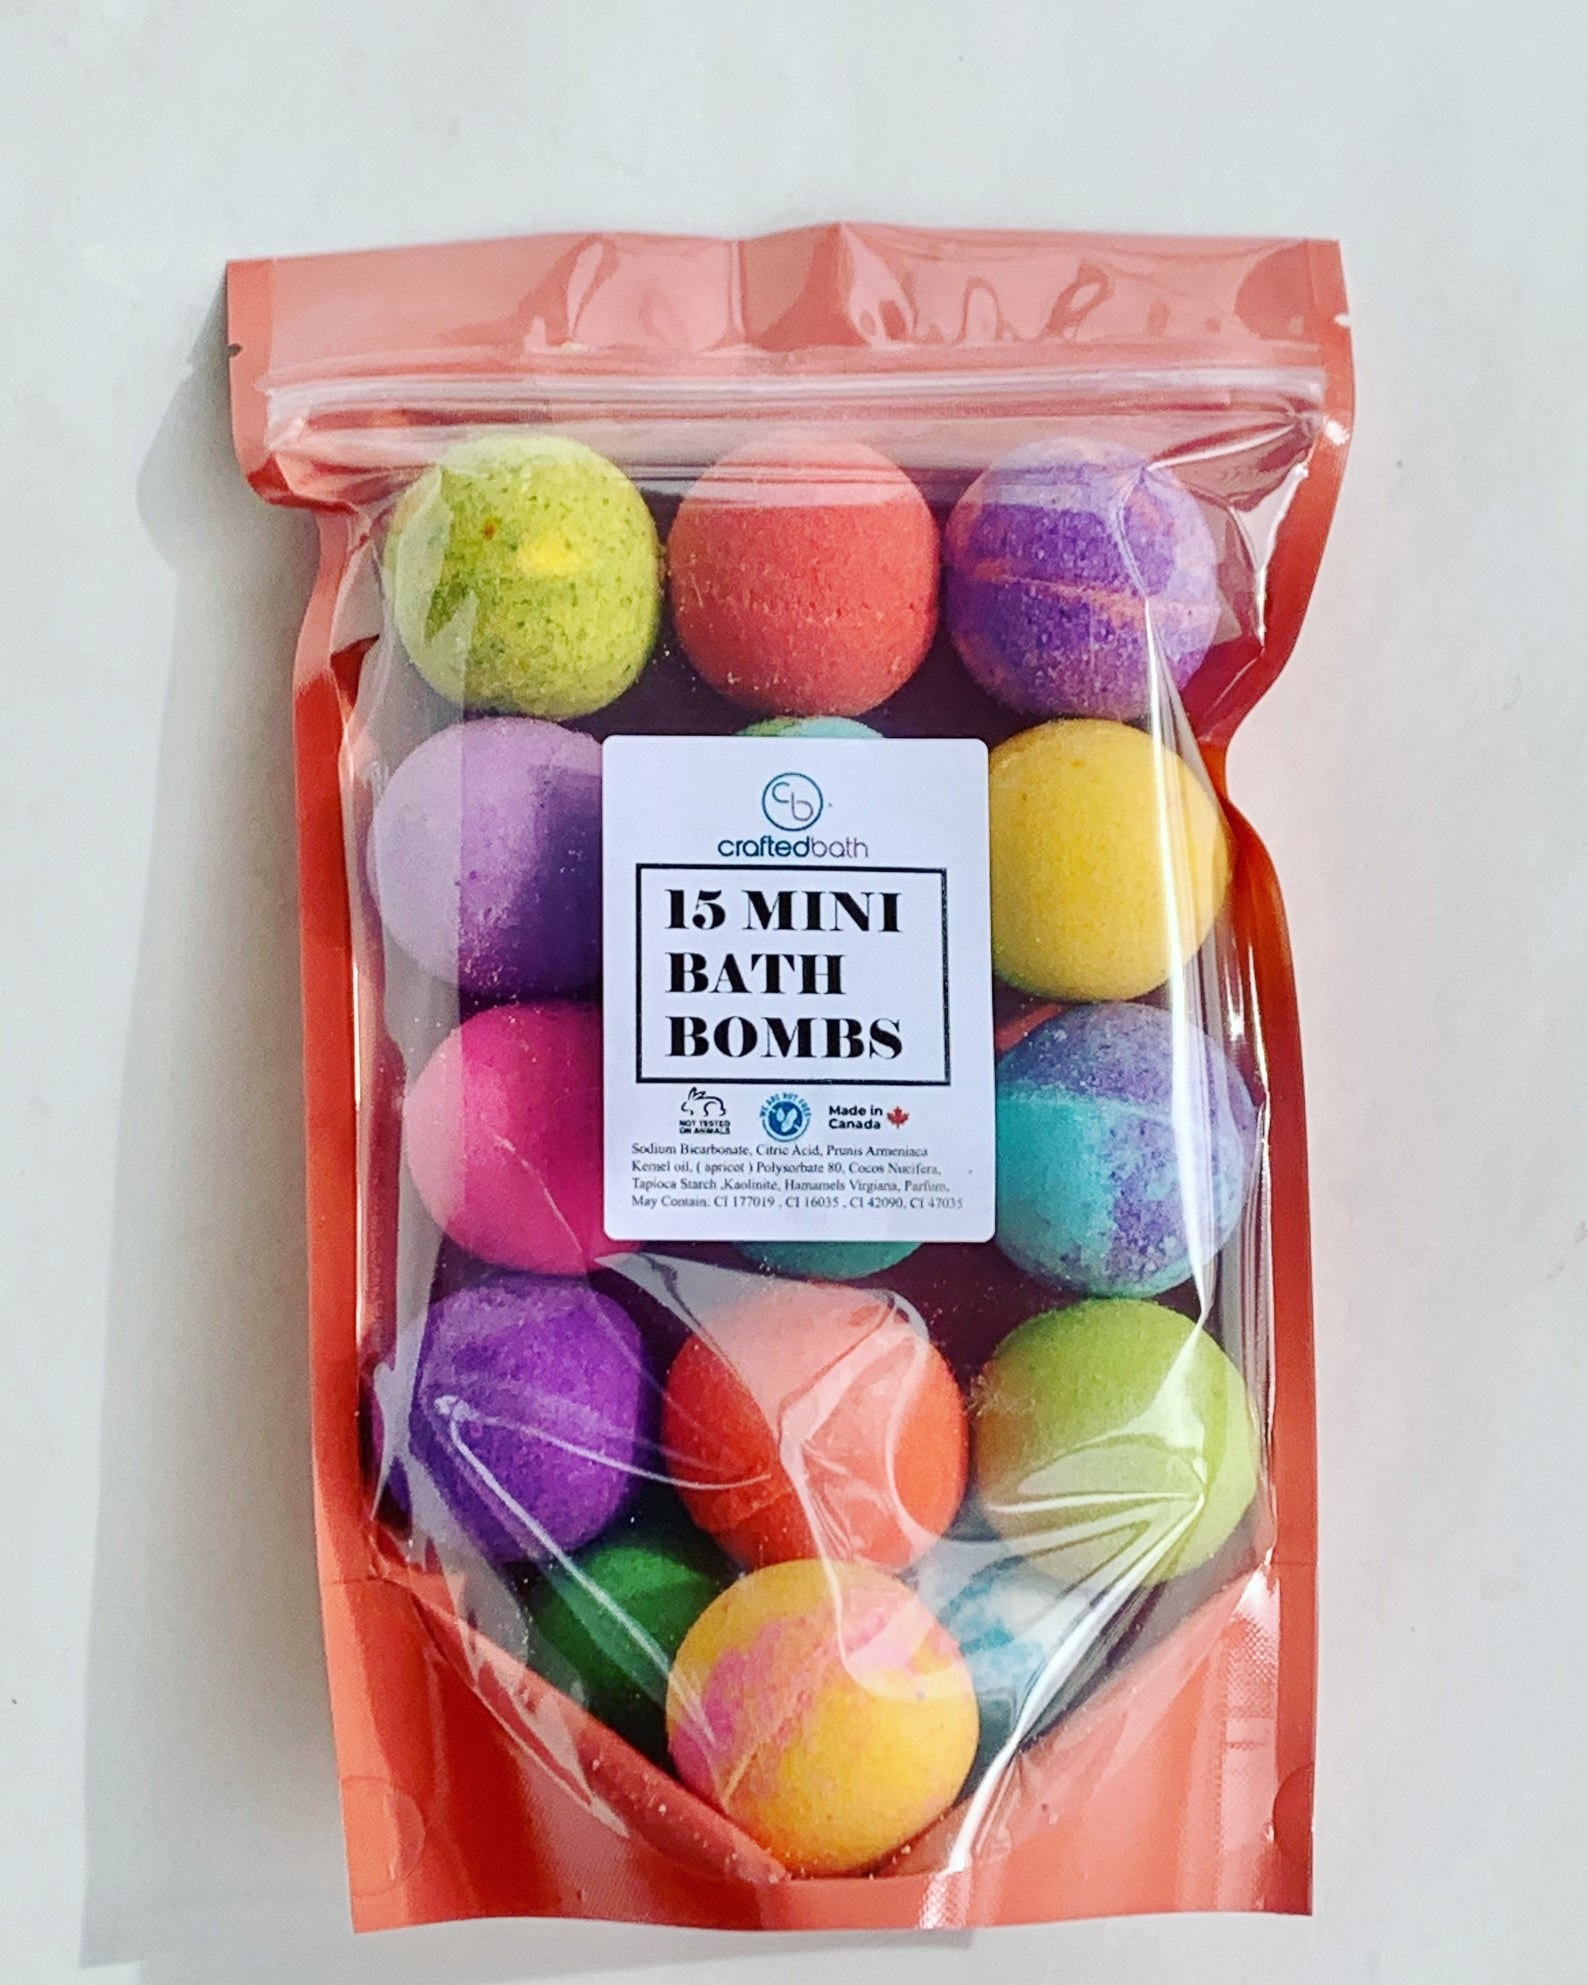 bag filled with bath bombs